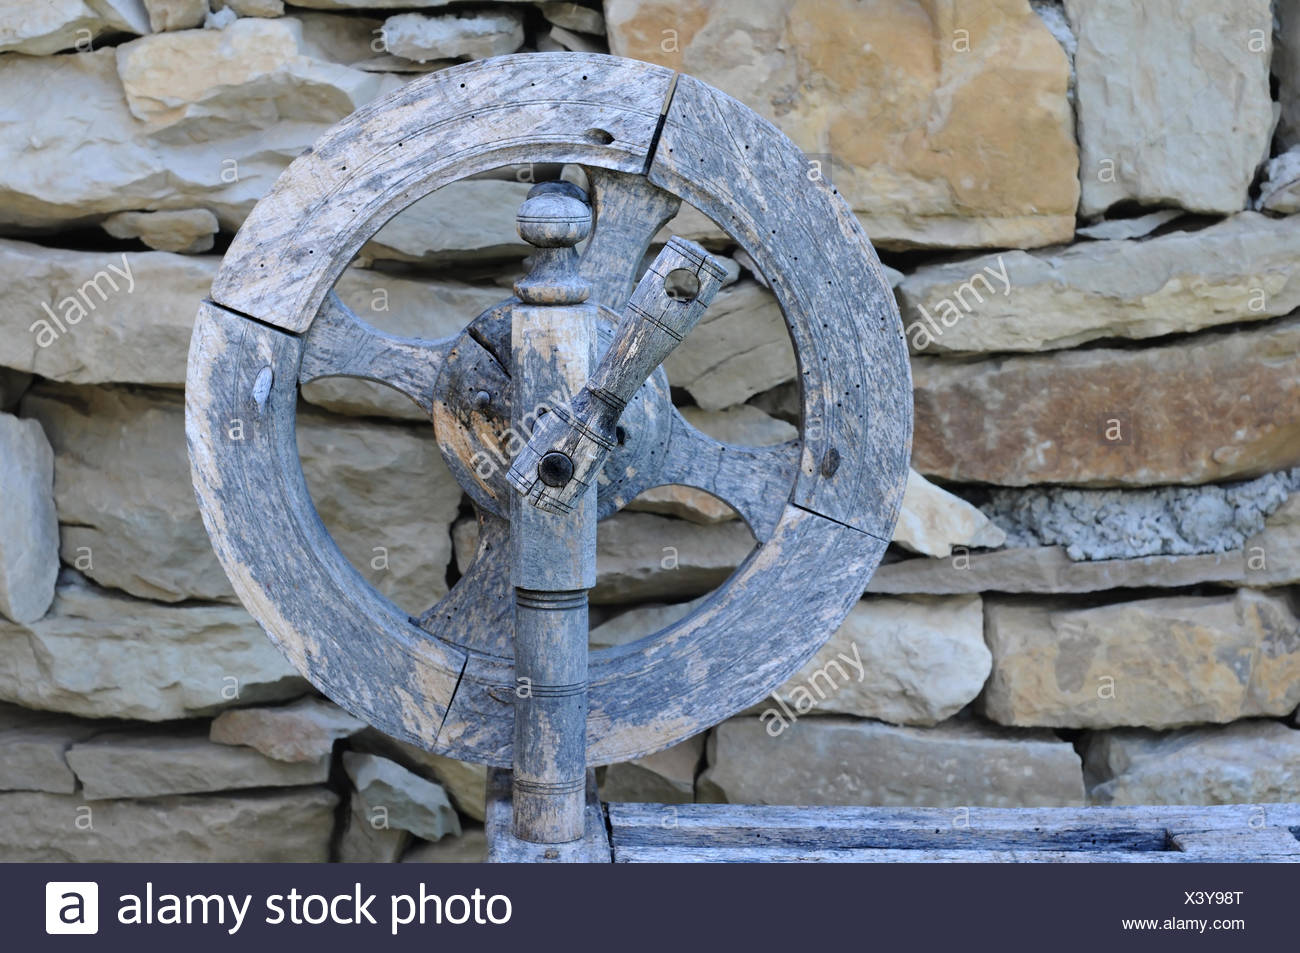 Retro Spinning Wheel Against Stone Wall Background - Stock Image